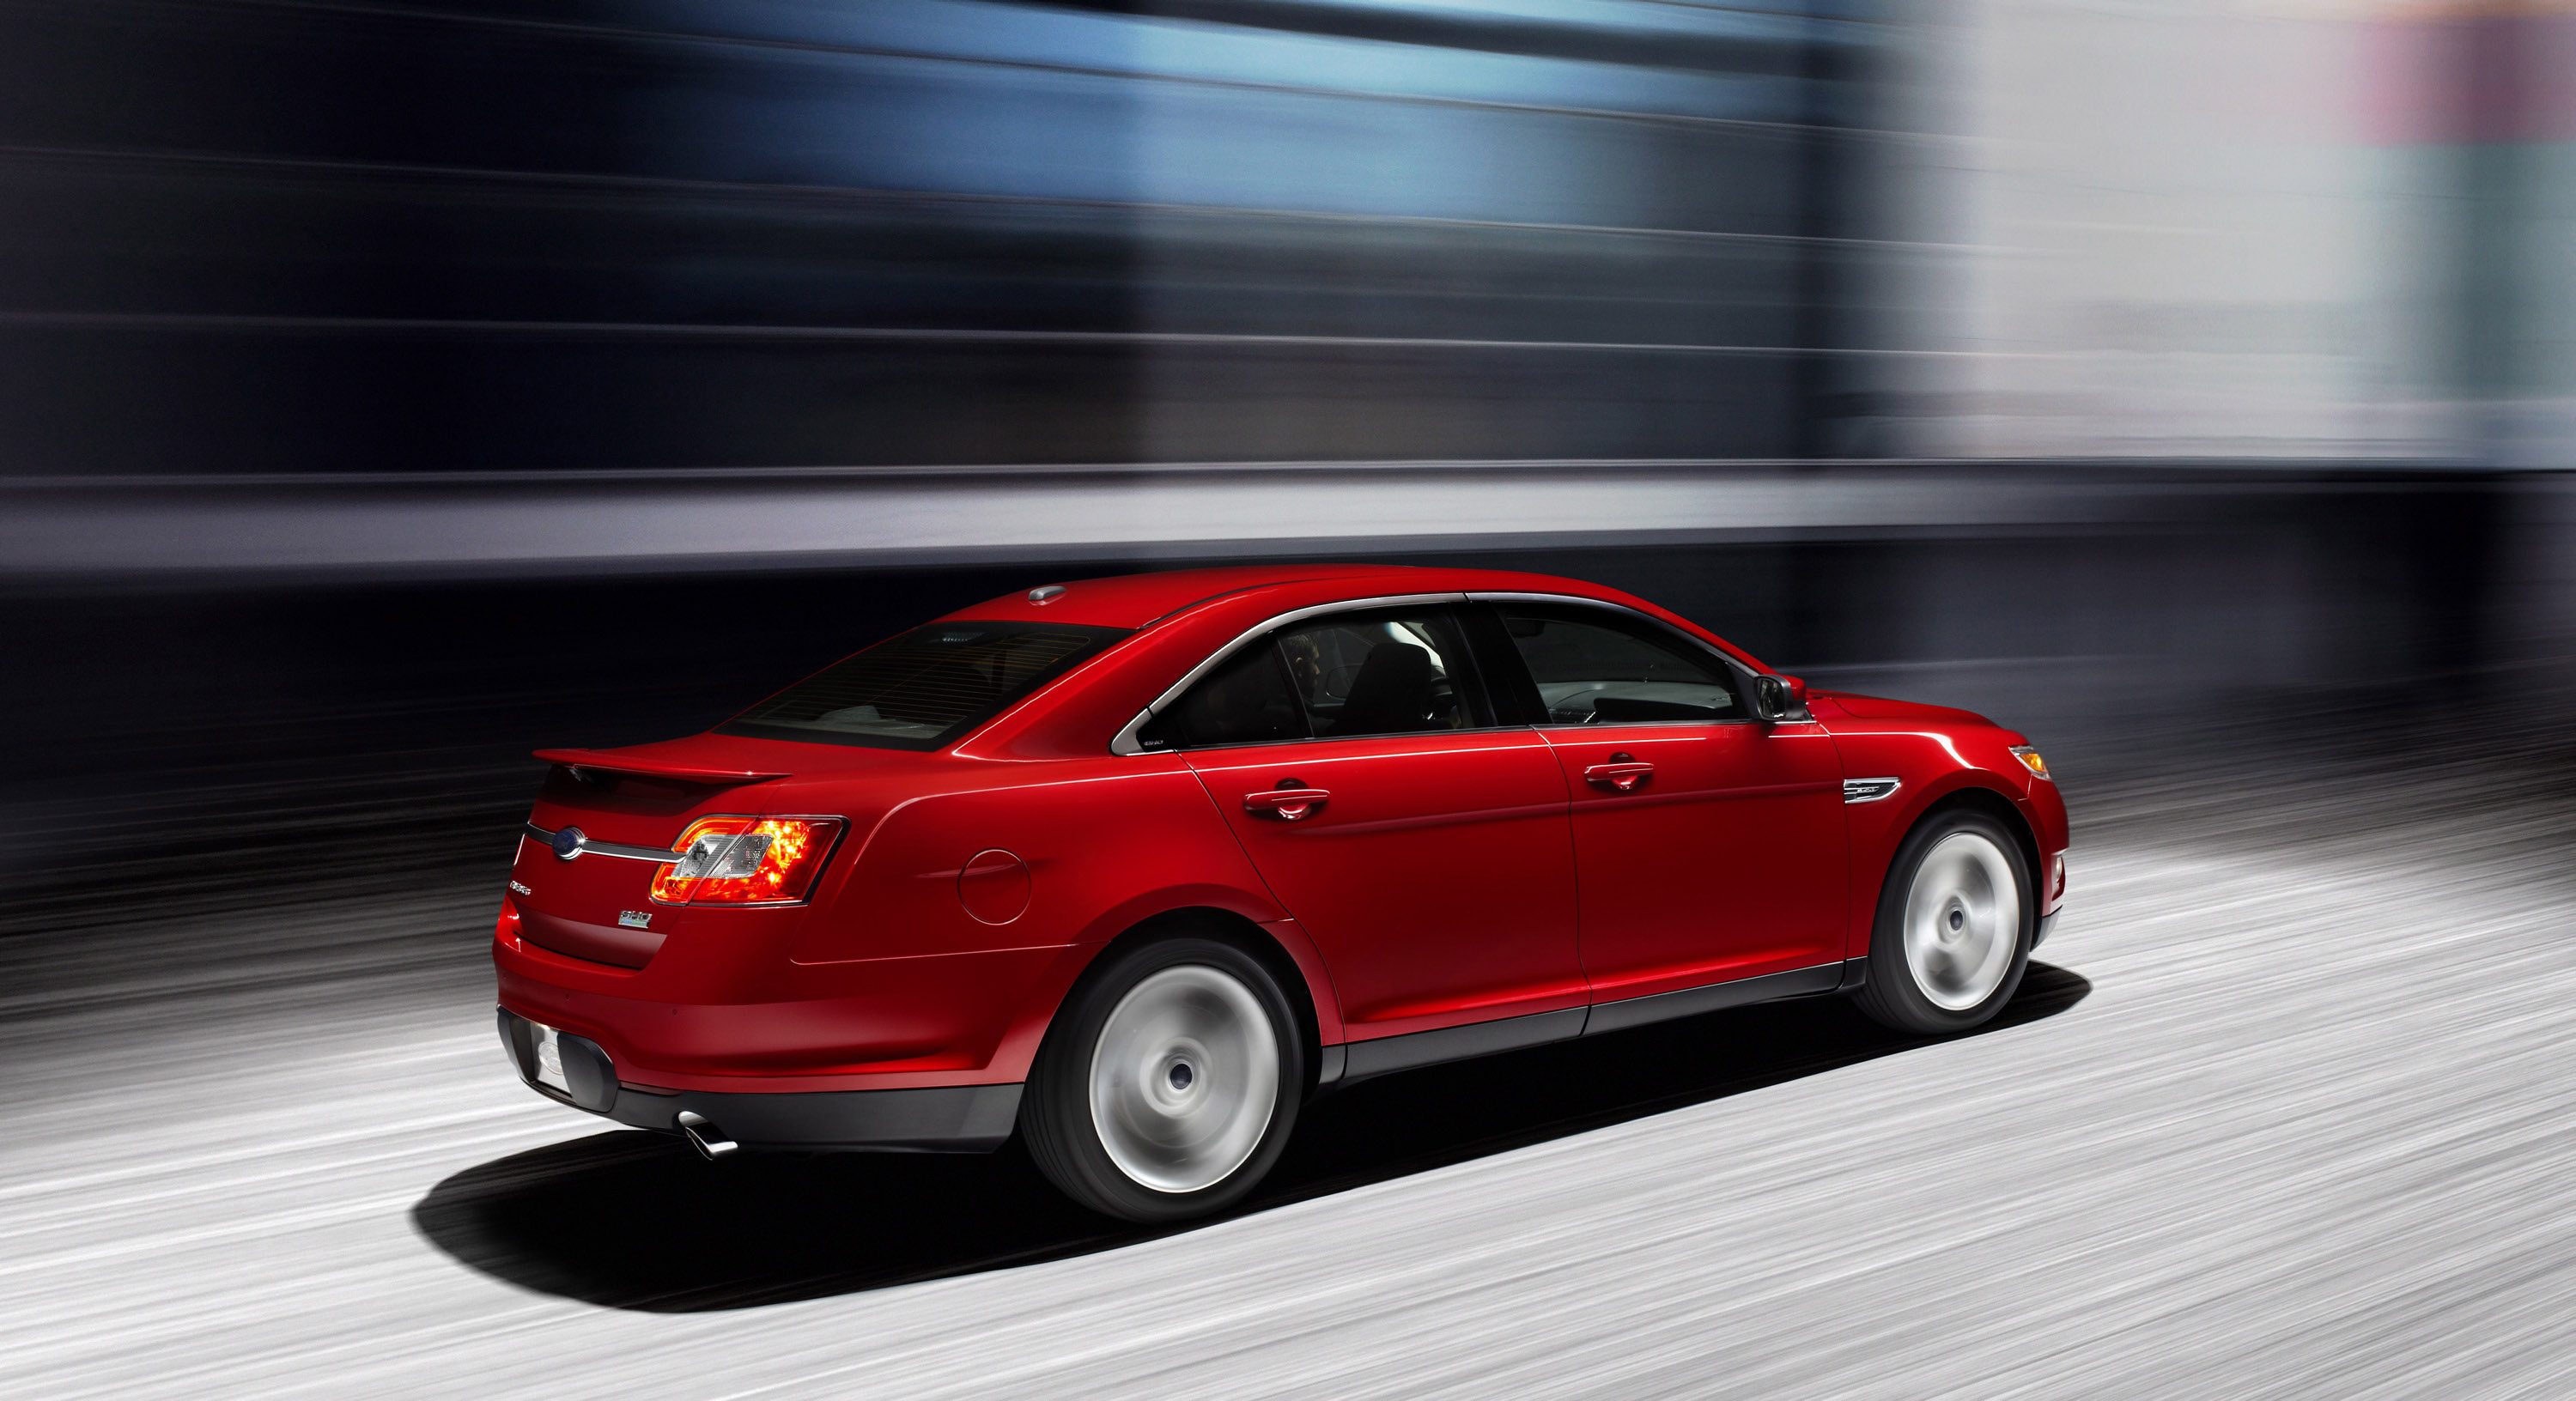 The New Ford Taurus Sculpted for Optimal Fuel Economy